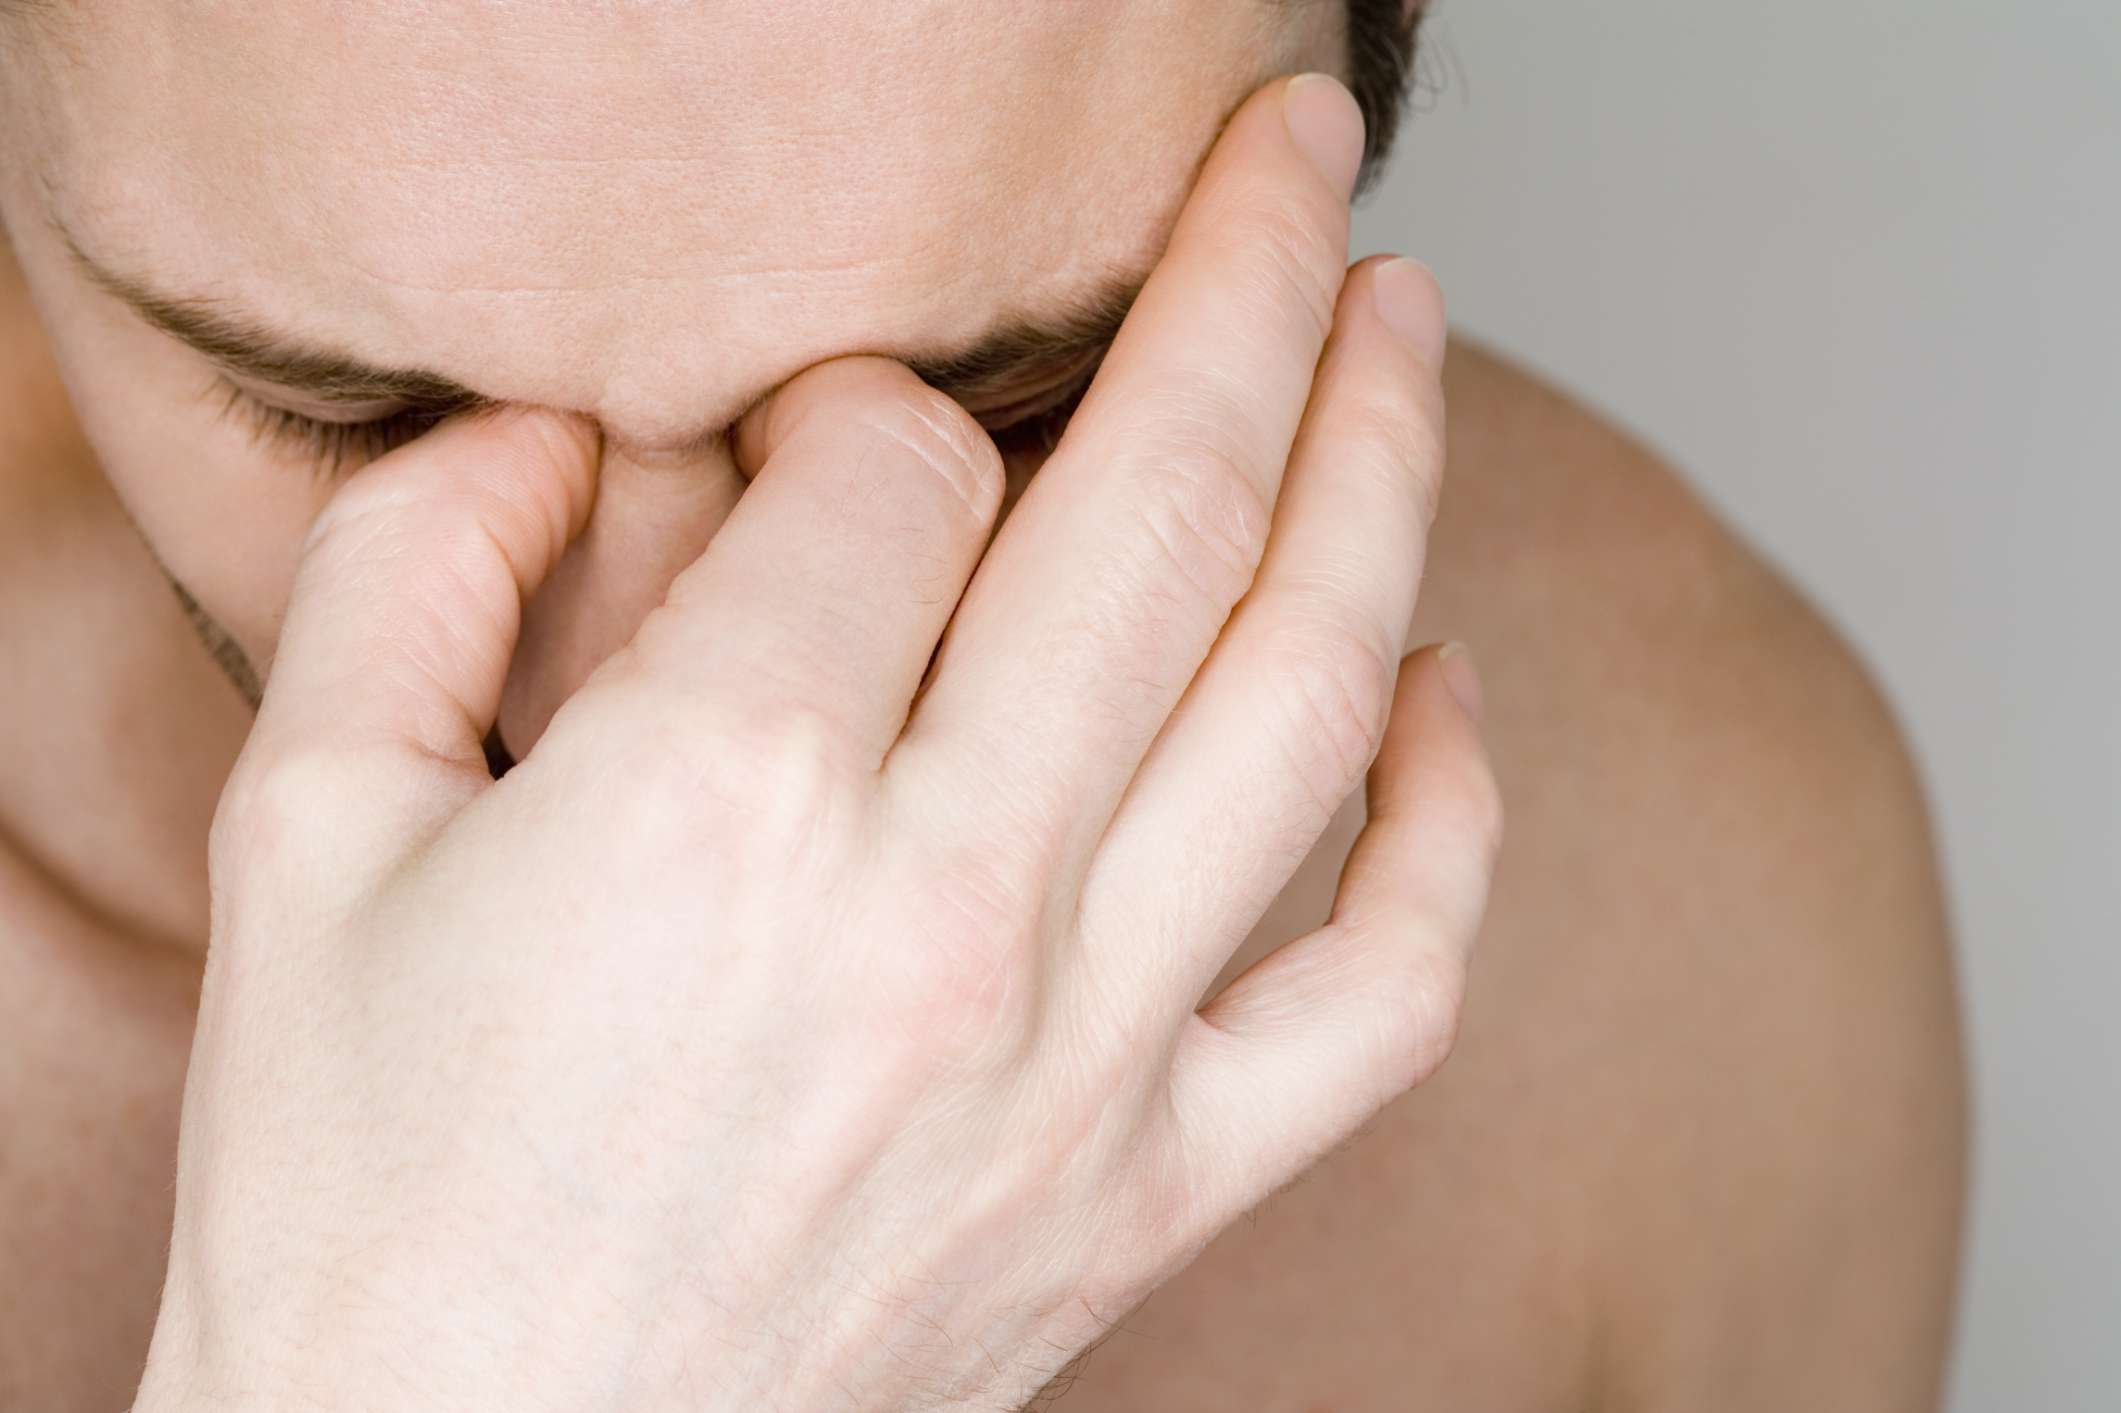 Man with painful sinuses